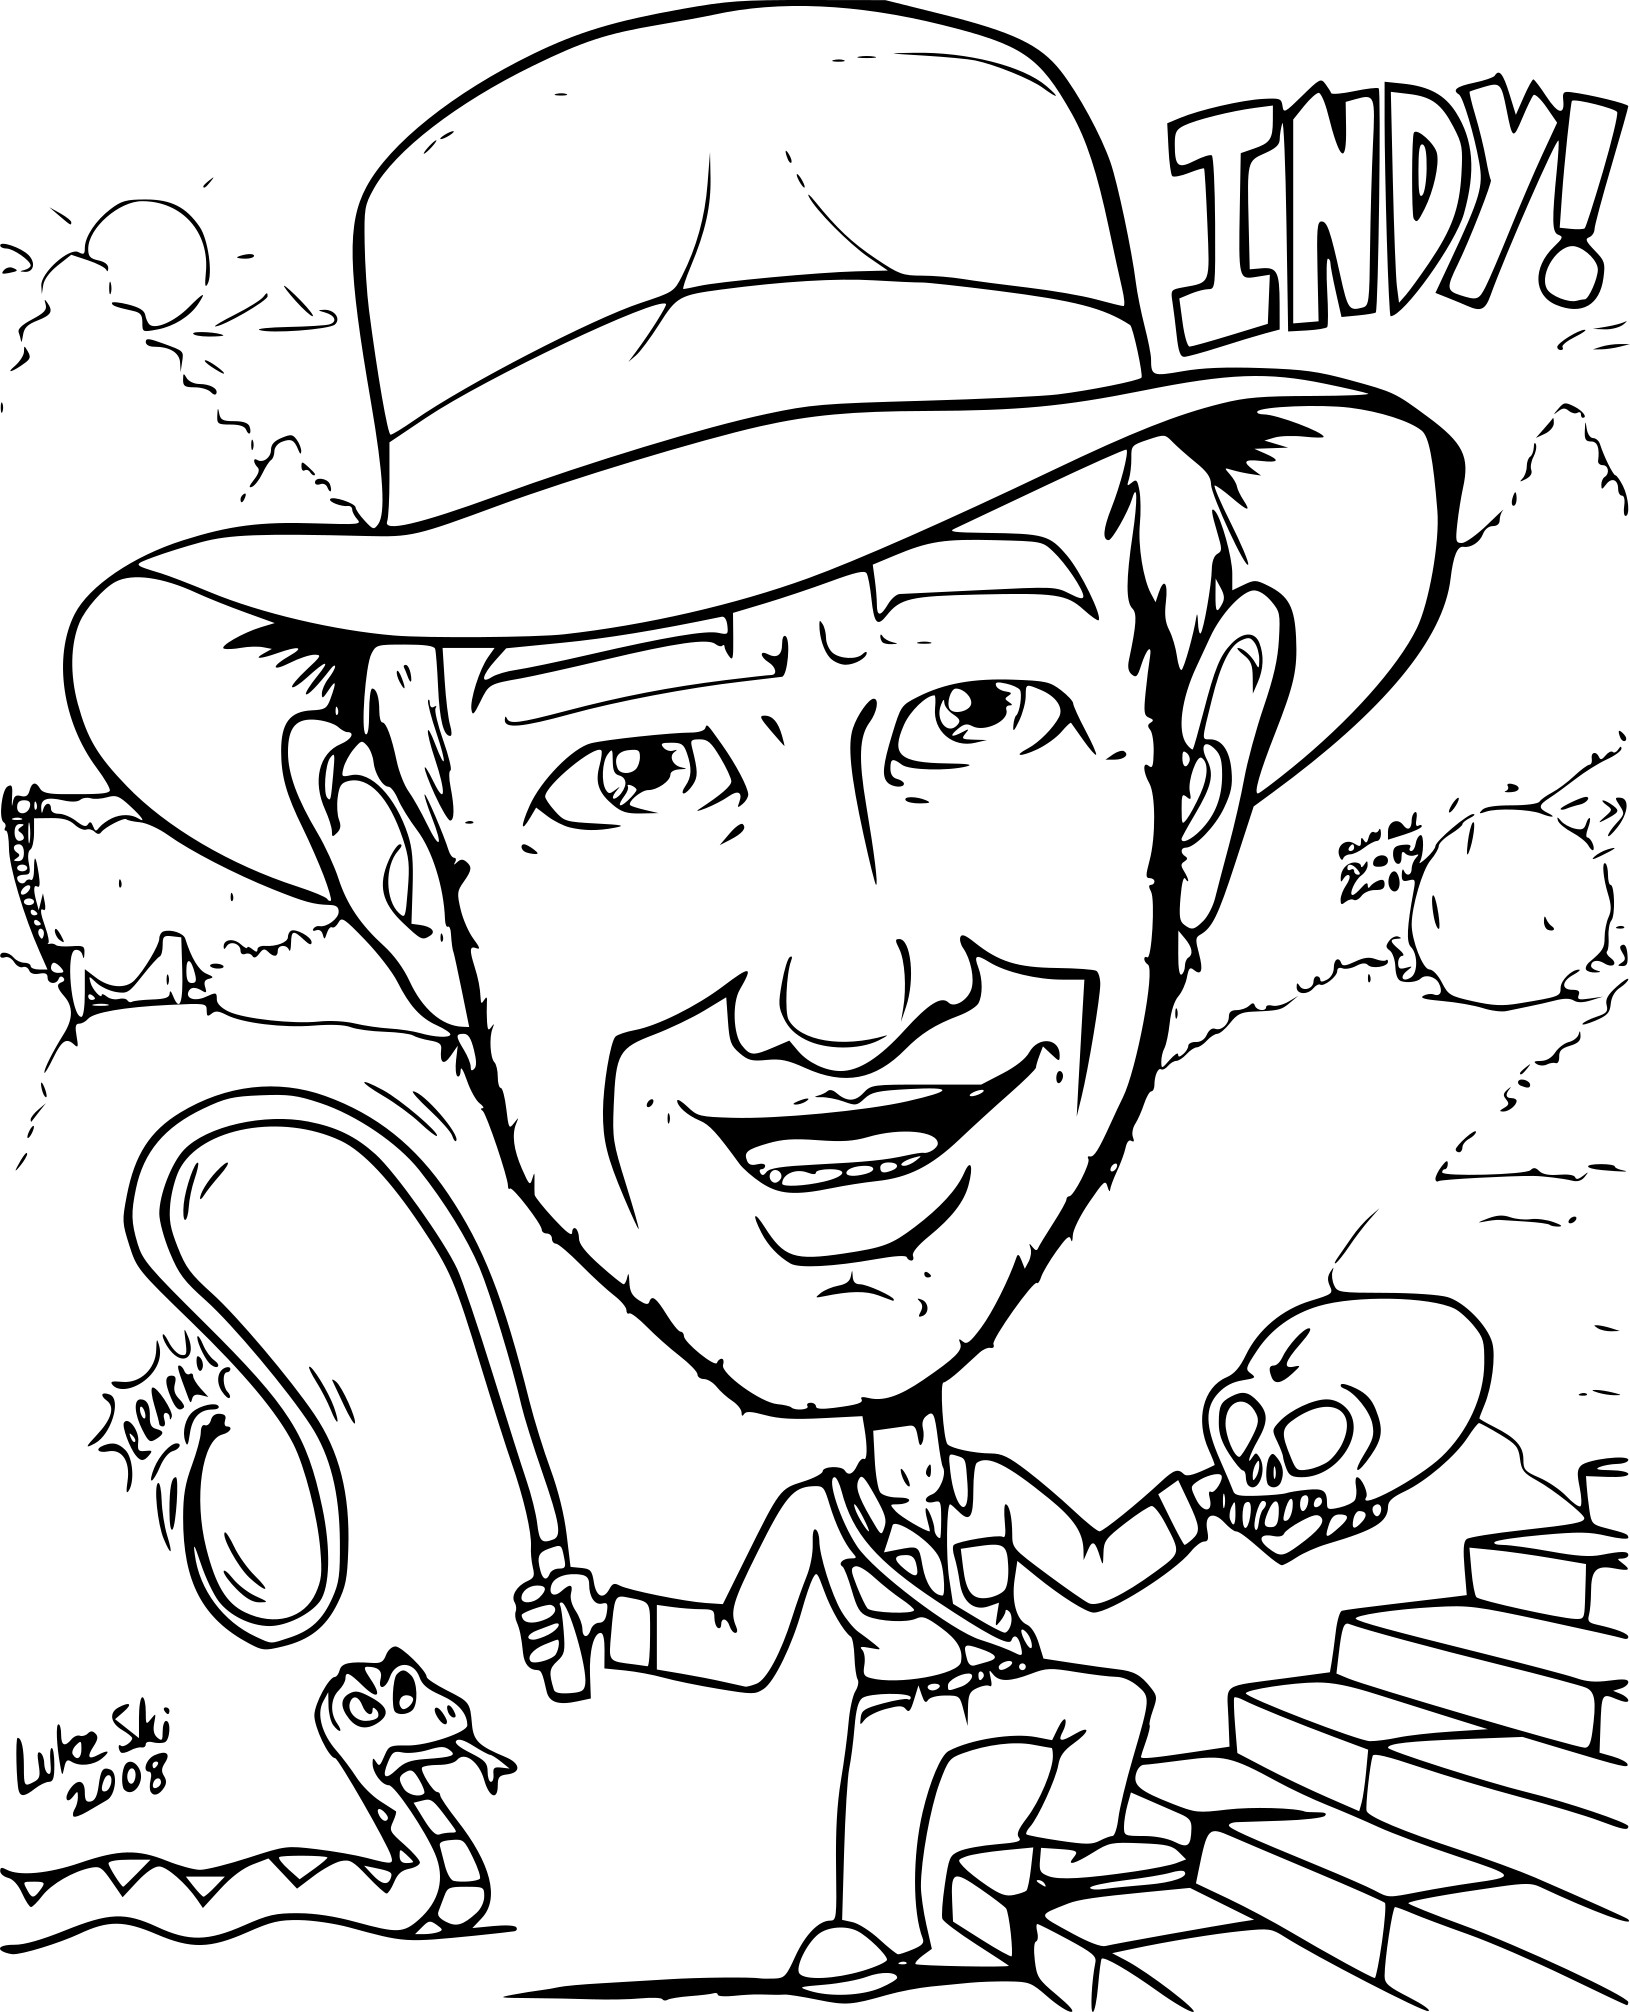 Indiana jones lego coloring pages coloring pages for Lego indiana jones coloring pages